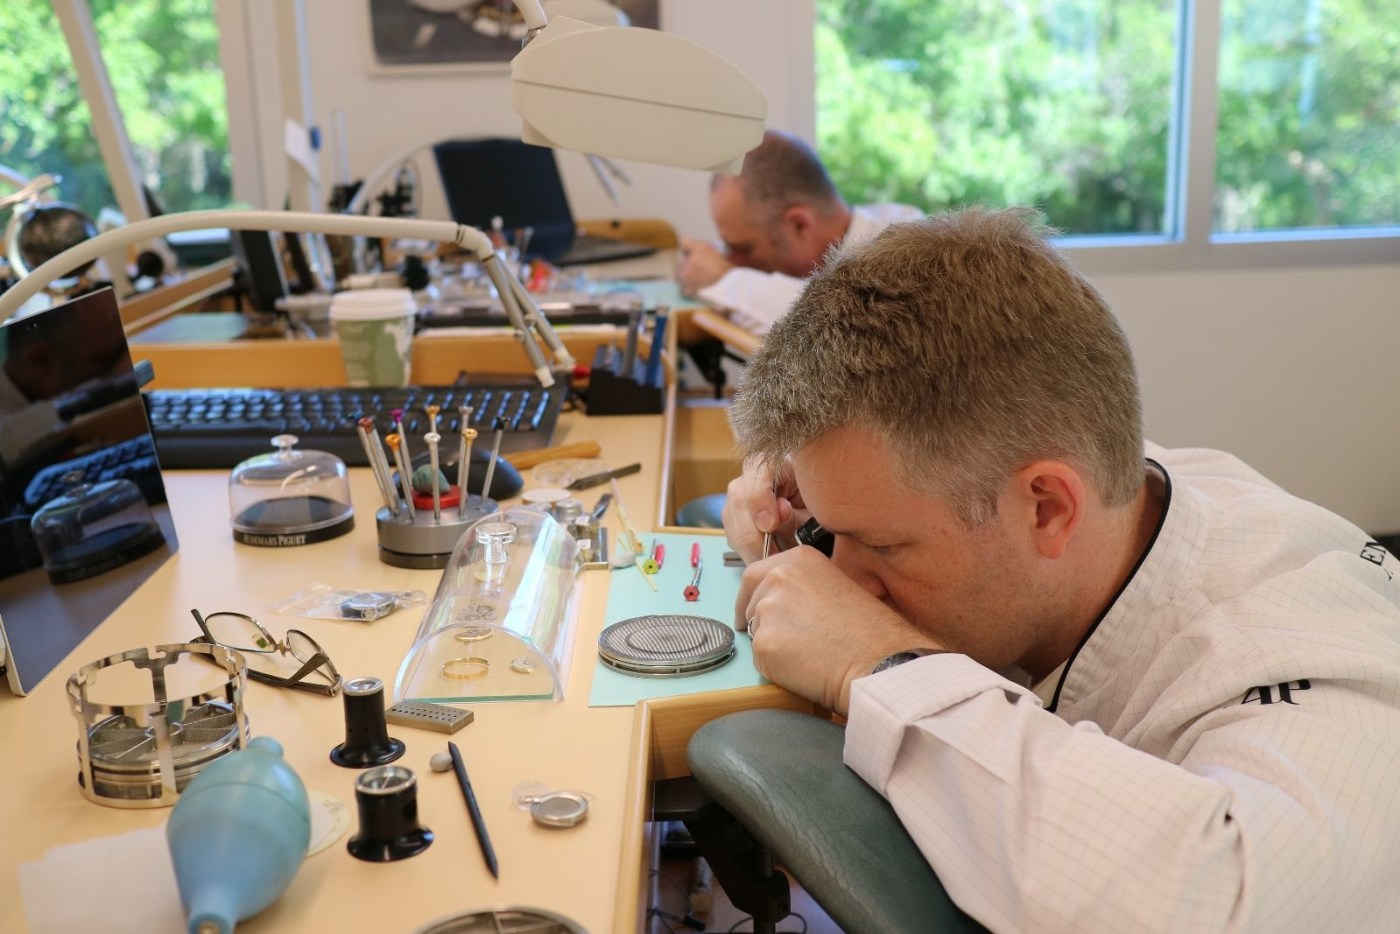 A step inside of Audemars Piguet's US Service Center to see my Royal Oak receive a factory service